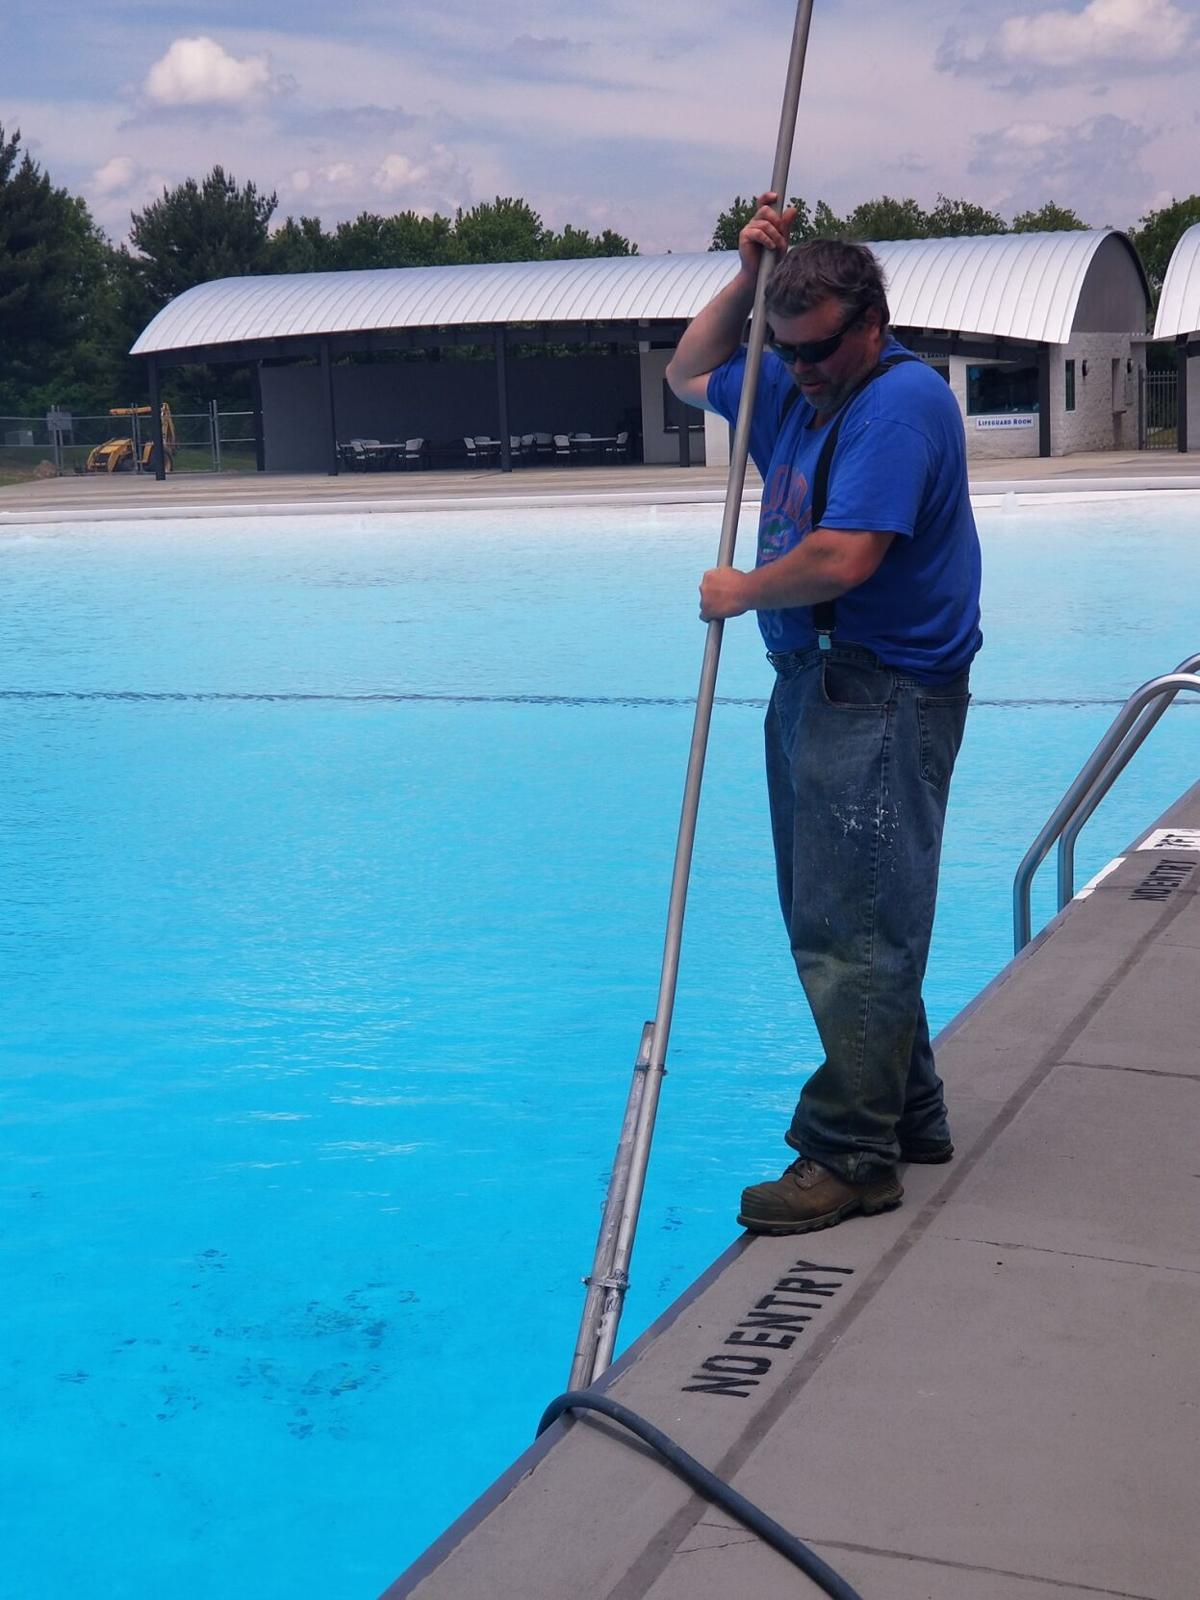 Mcparc Remains Undecided About Pool Openings Covid 19 Timeswv Com By popularity timeswv.com ranked 208 684th in the world, 39 106th place in united states, 16 835th place in category news and media has clear positive dynamics in attracting traffic. mcparc remains undecided about pool